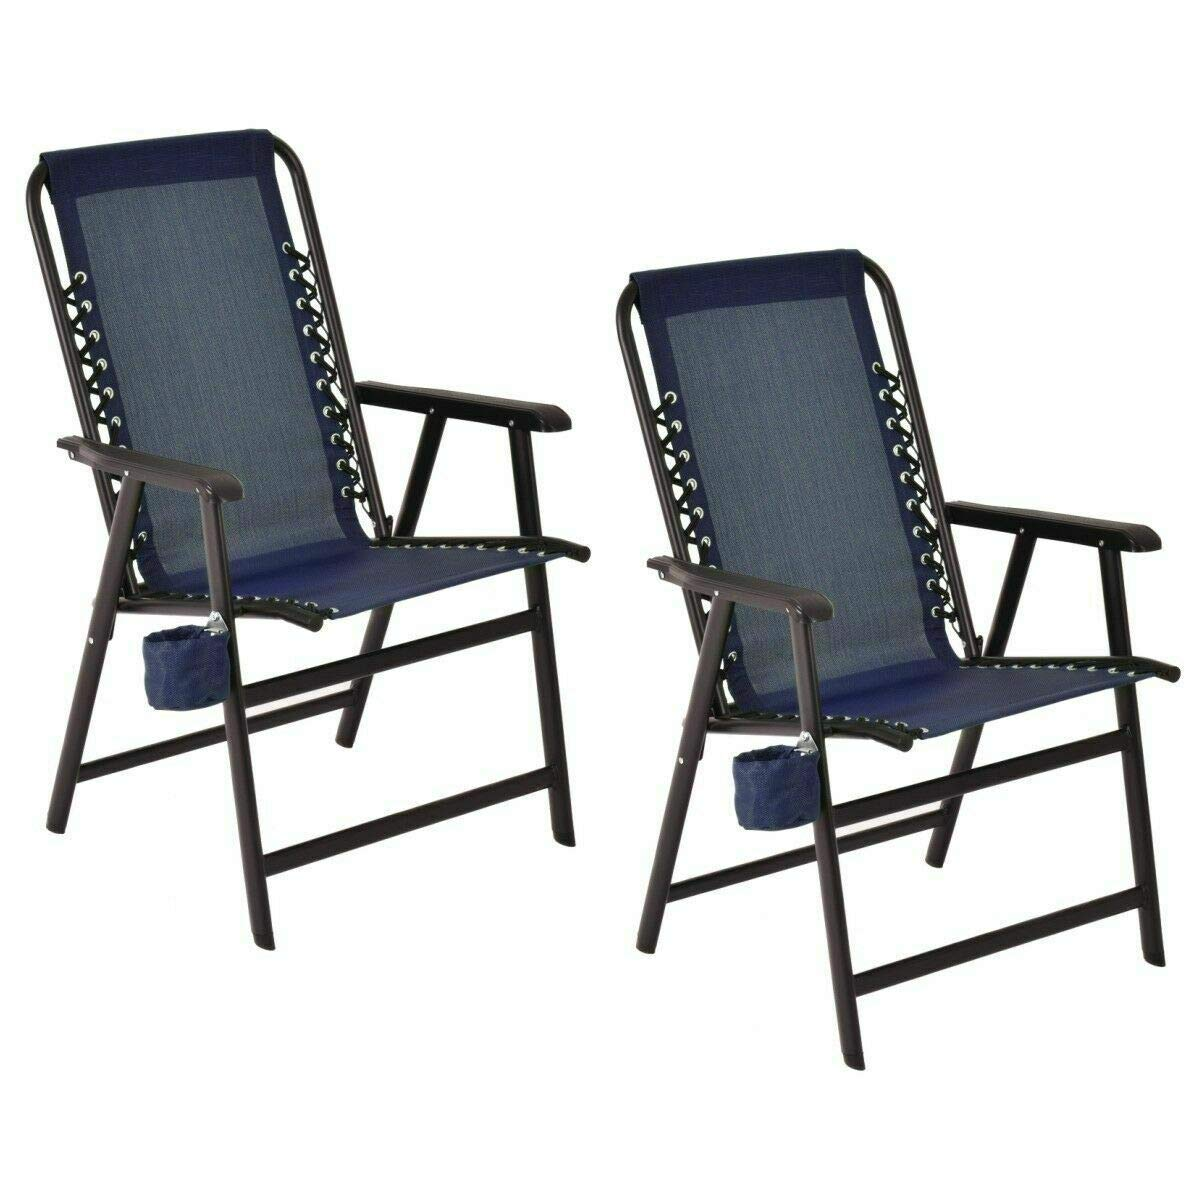 Shining Folding Outdoor Arm Chair Steel Frame with Cup Holder Blue Set of Two